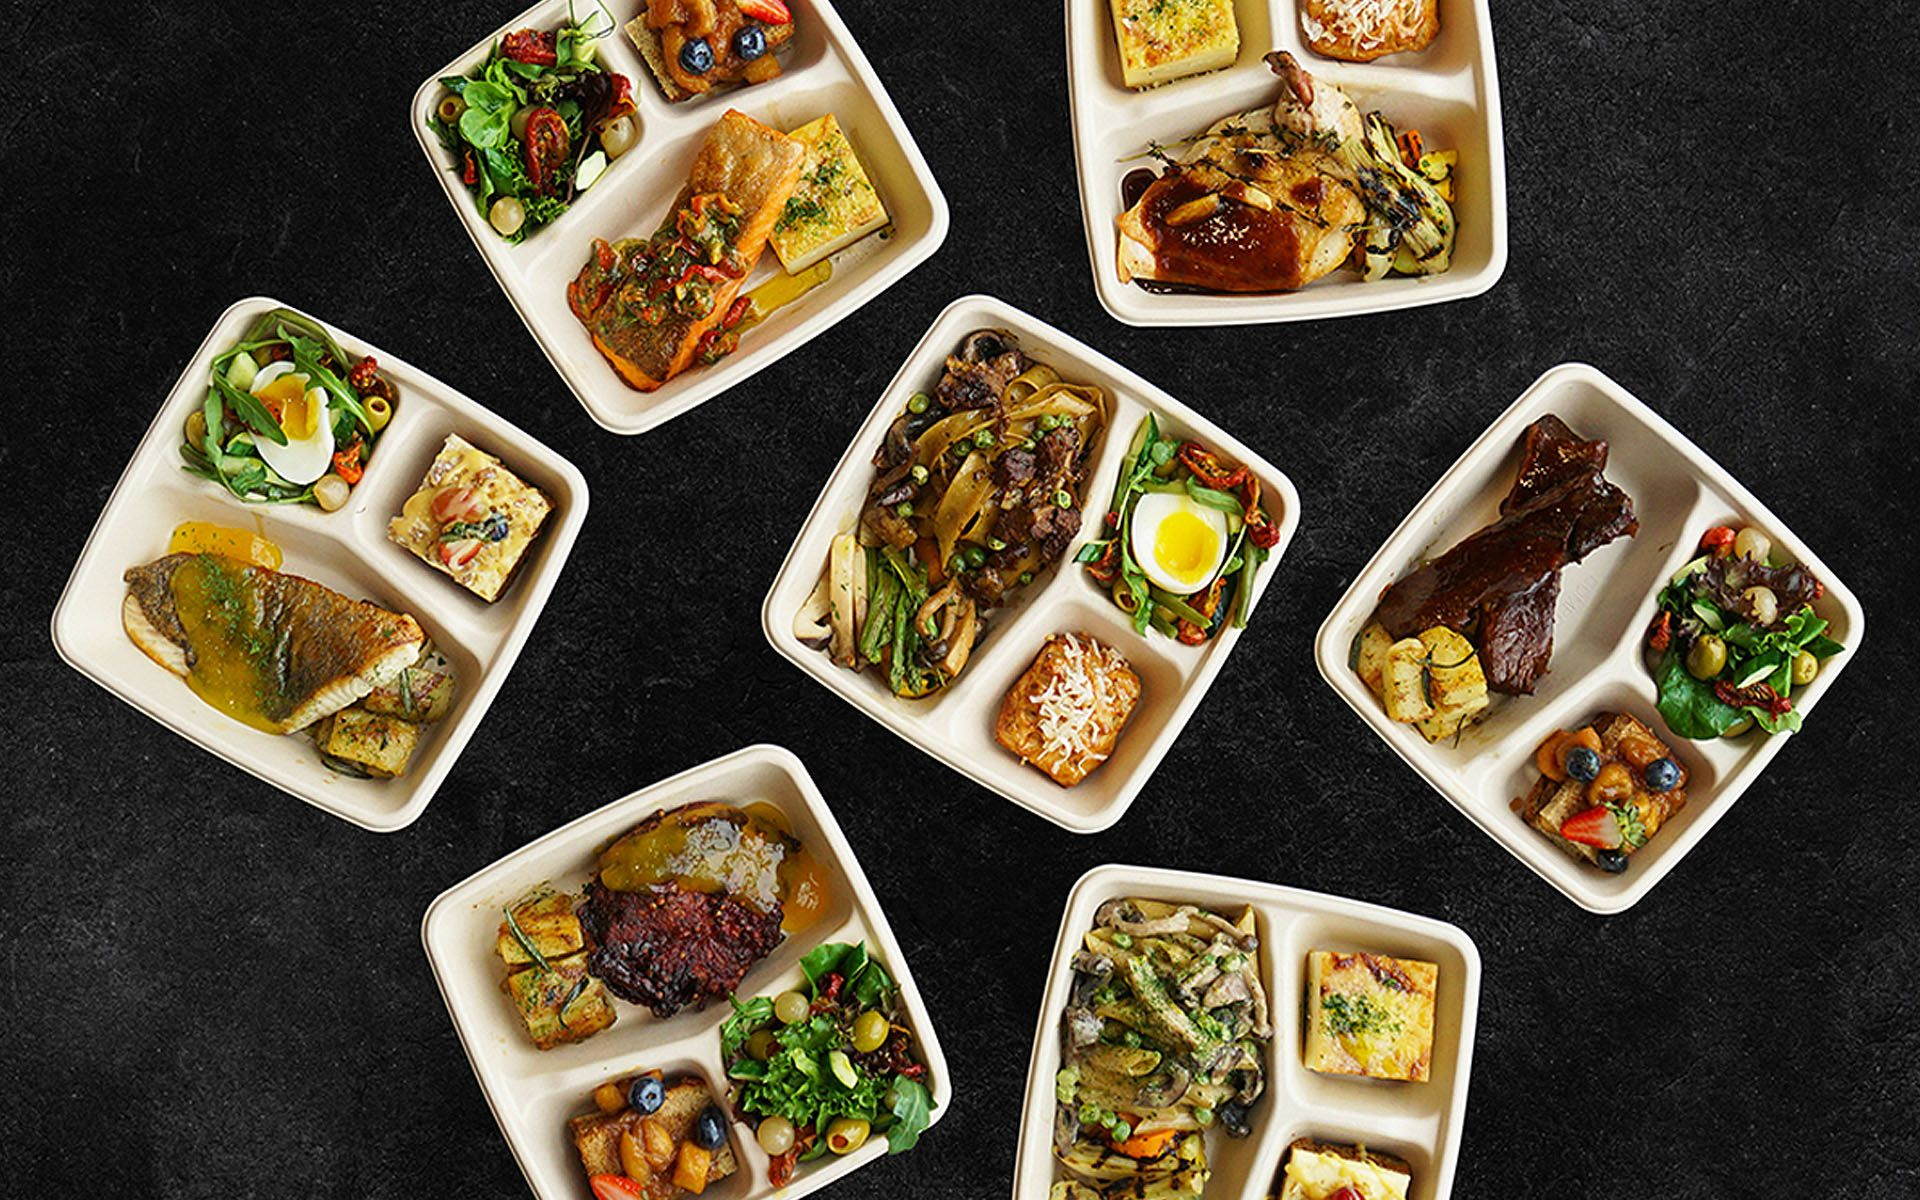 Nourish By Quan S Kitchen The Price Is Right For These Set Meals Tatler Malaysia